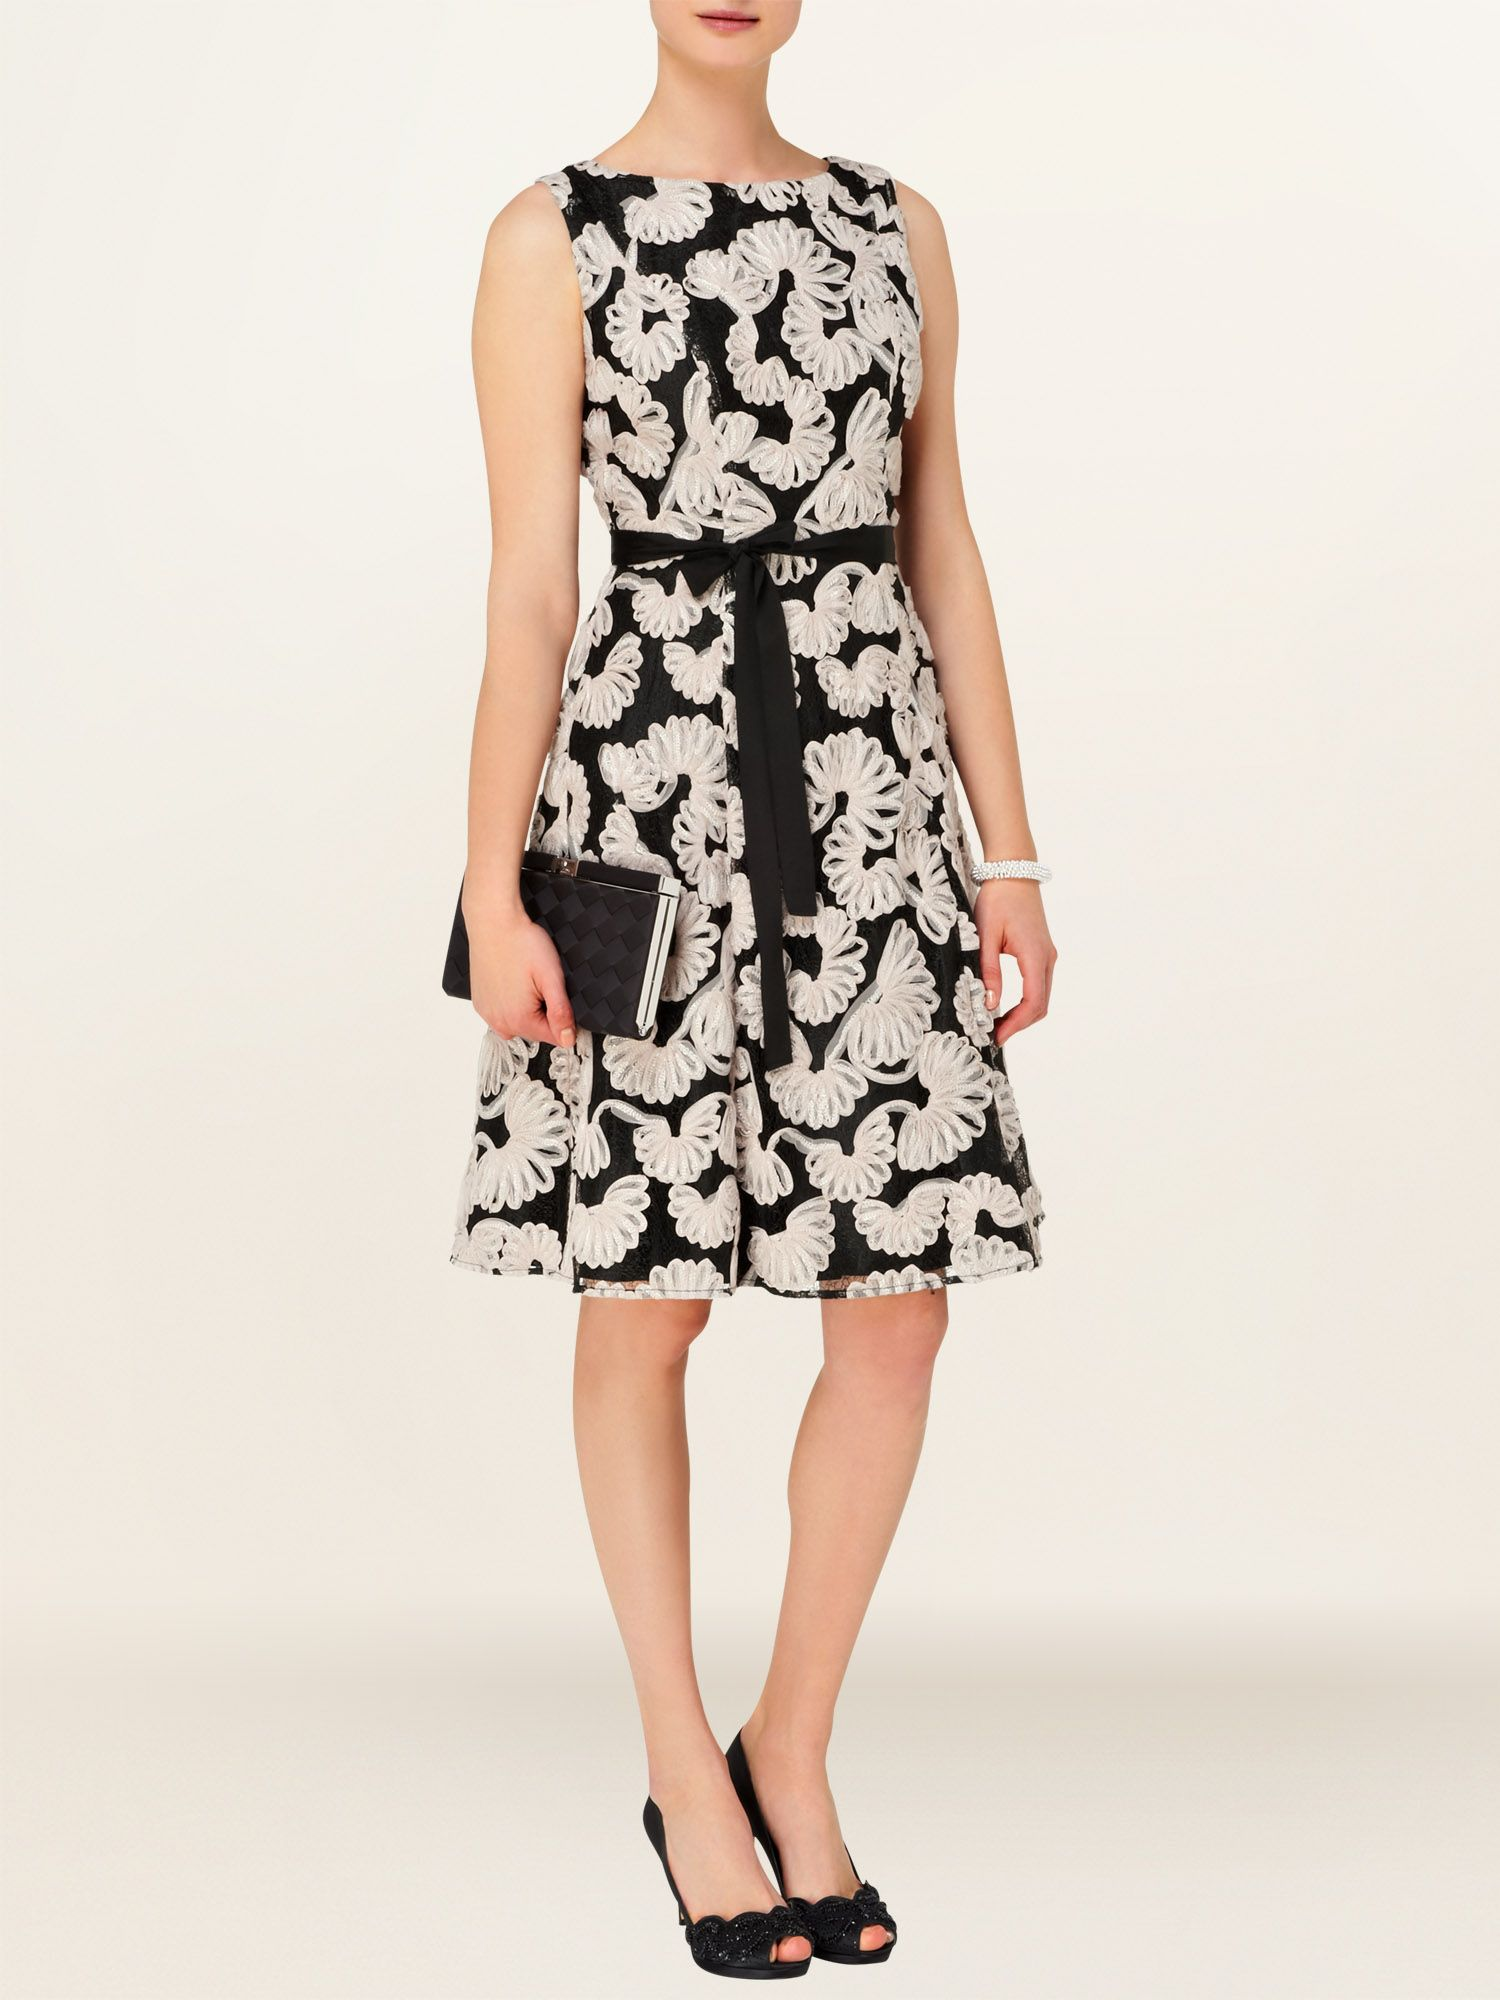 Rosie tapework dress